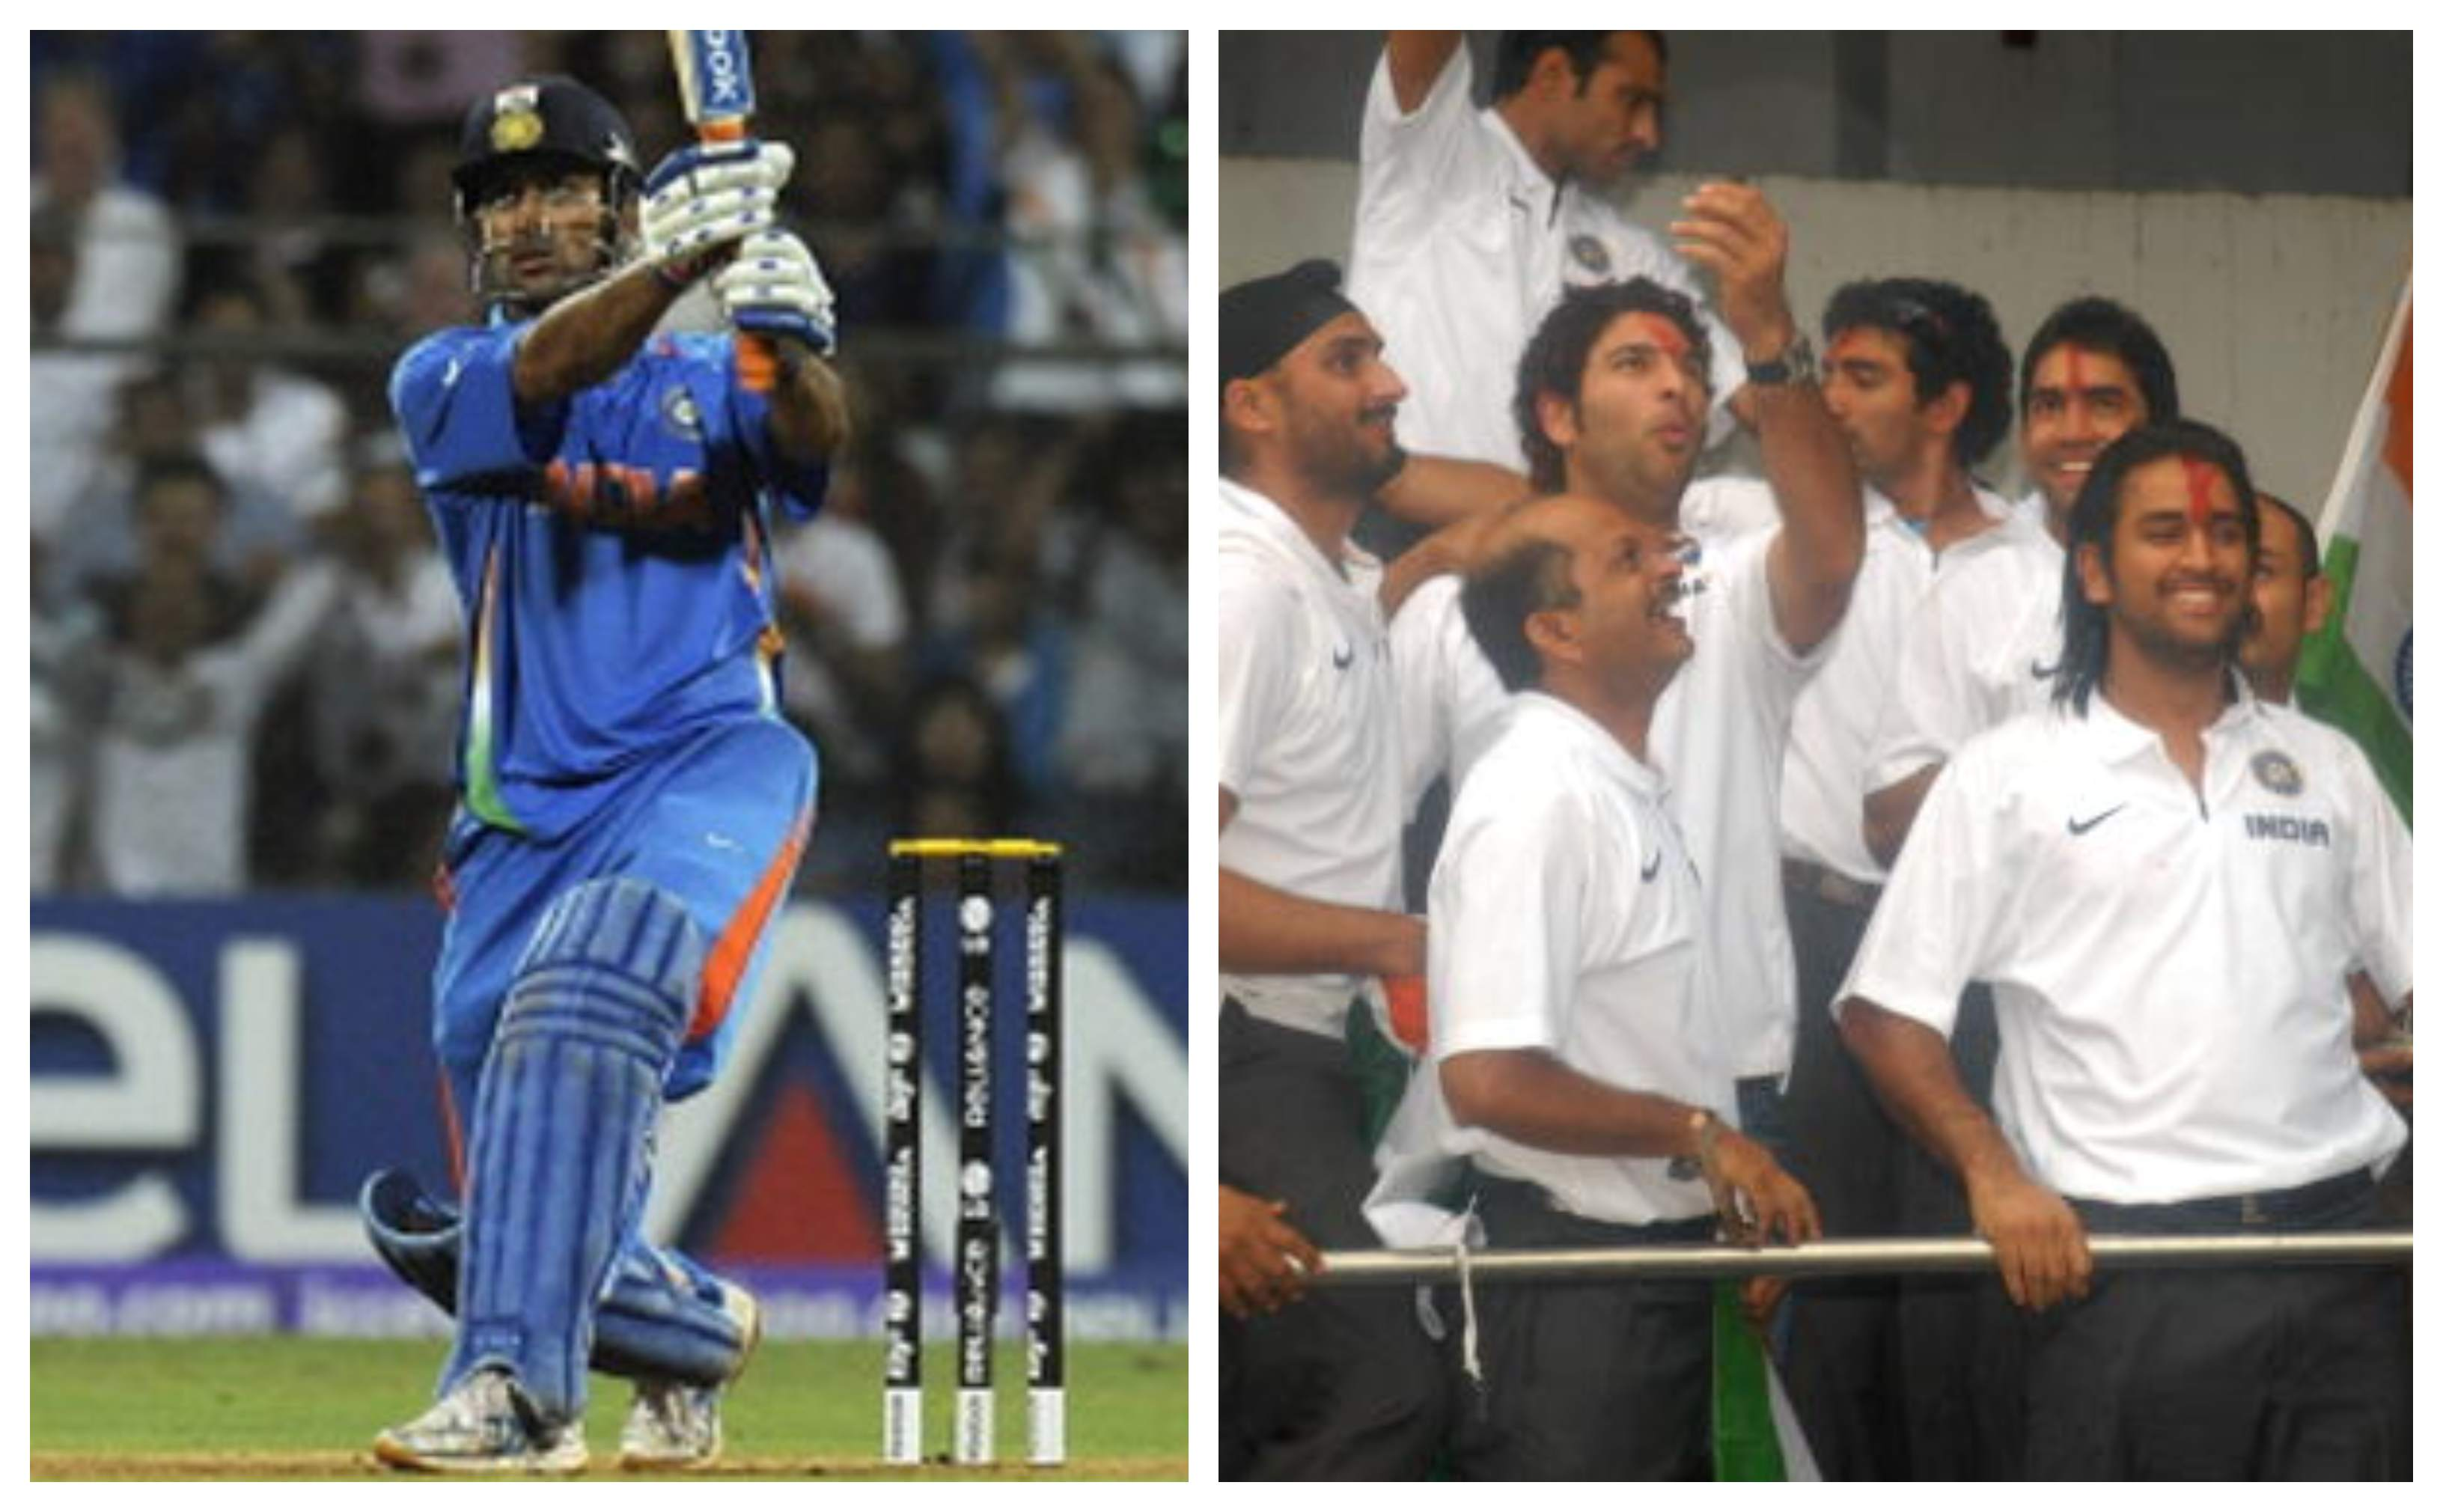 Dhoni picked these two moments as close to his heart | Getty